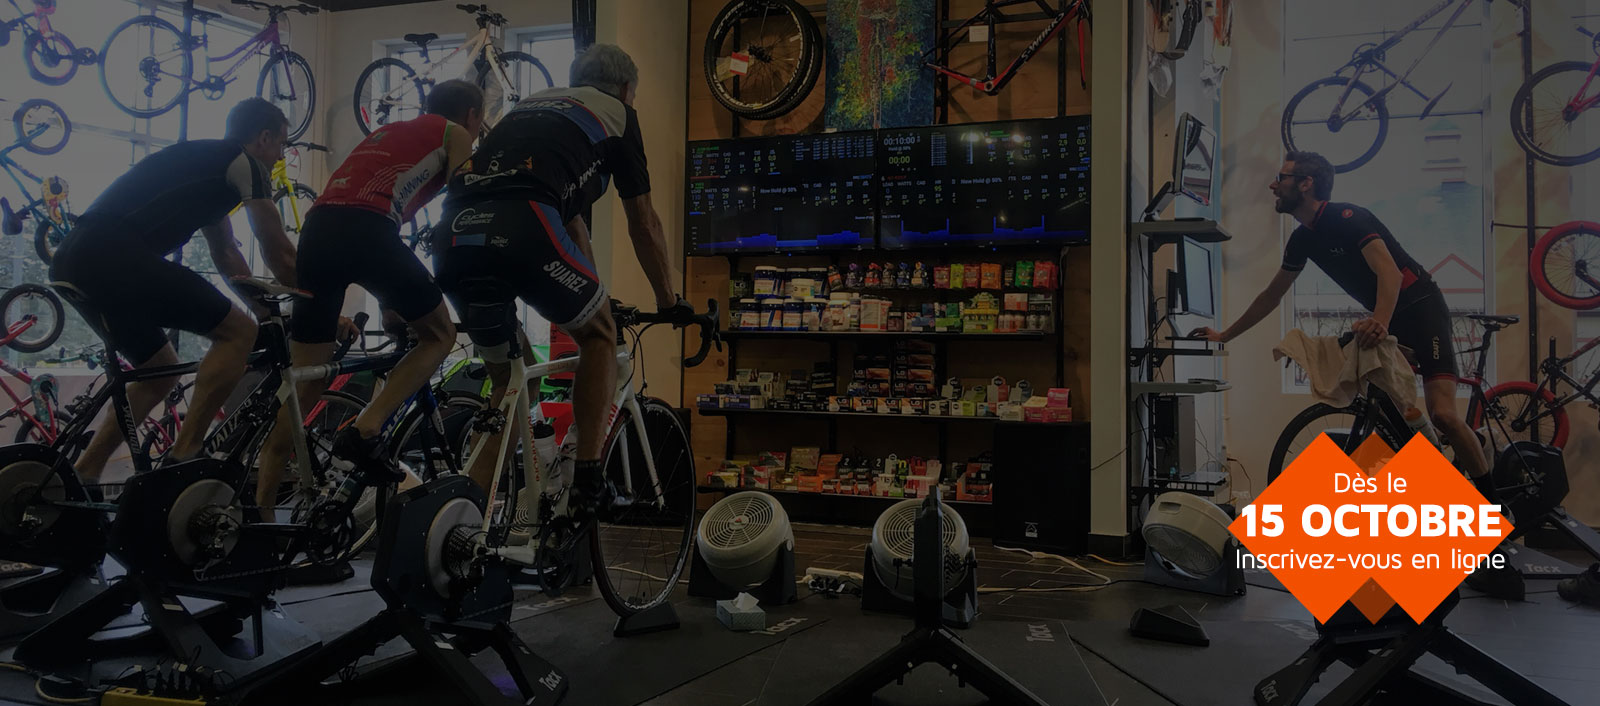 Spinning Montreal et Tremblant